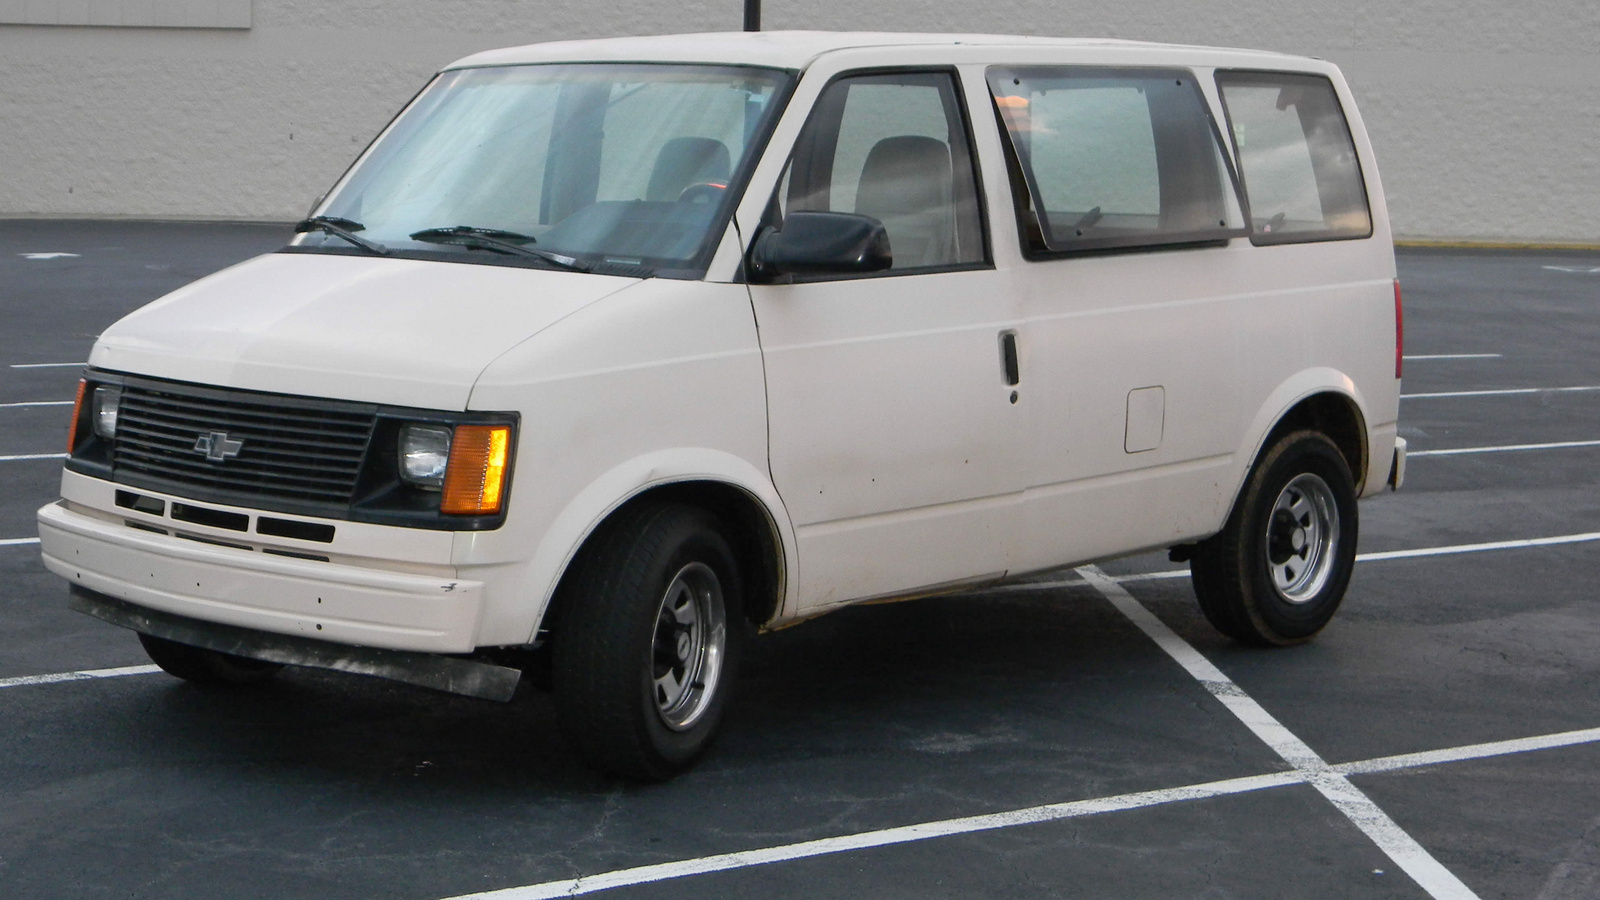 All Chevy 2004 chevy astro : 1990 Chevrolet Astro - Overview - CarGurus